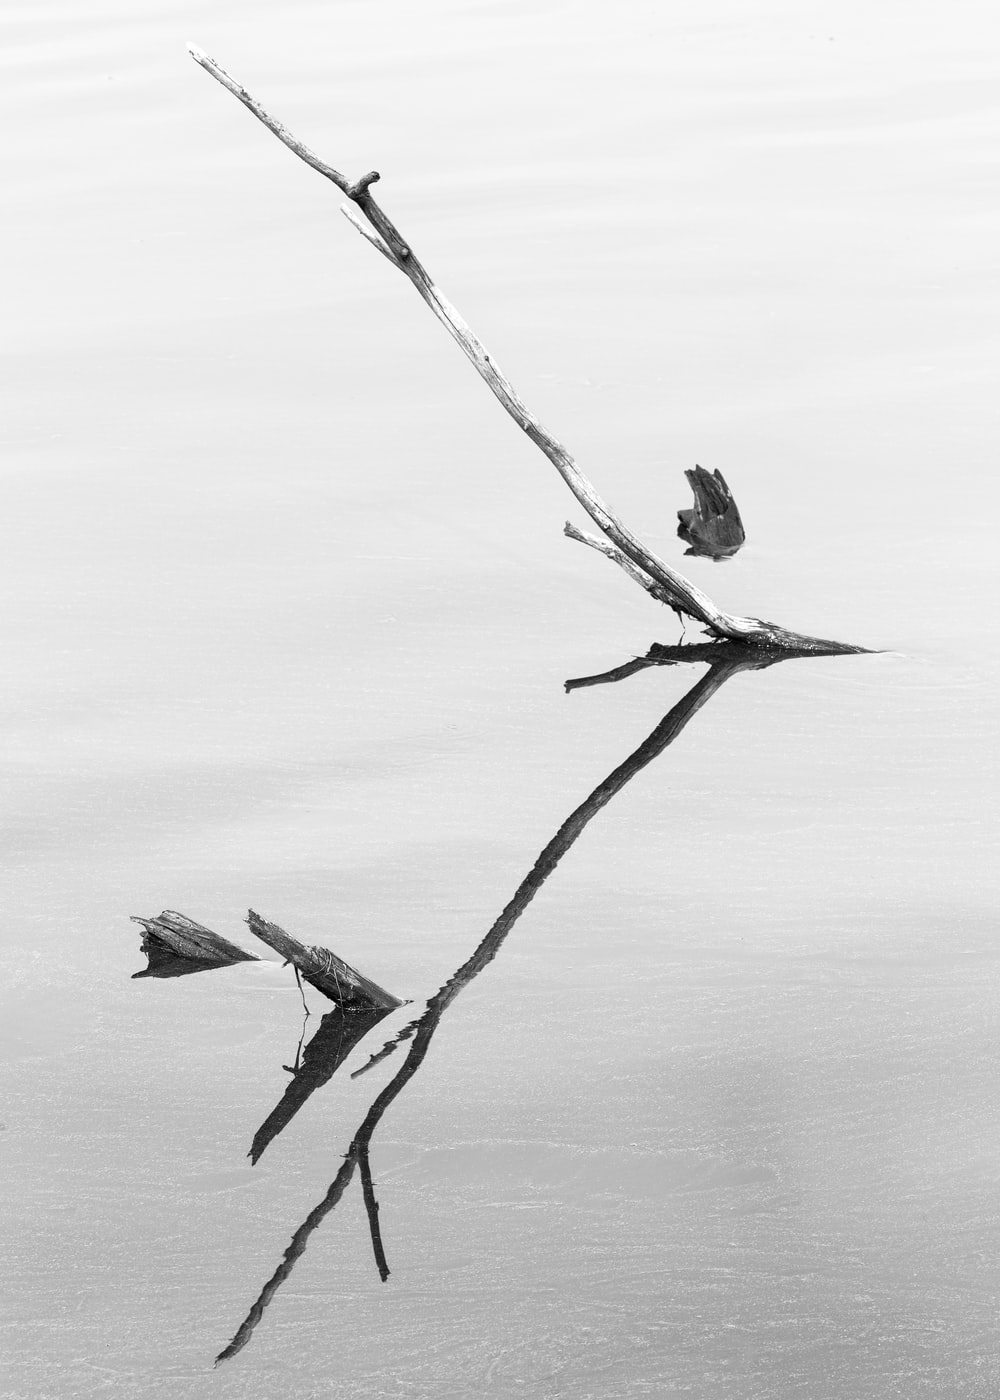 grayscale photo of tree branch on body of water